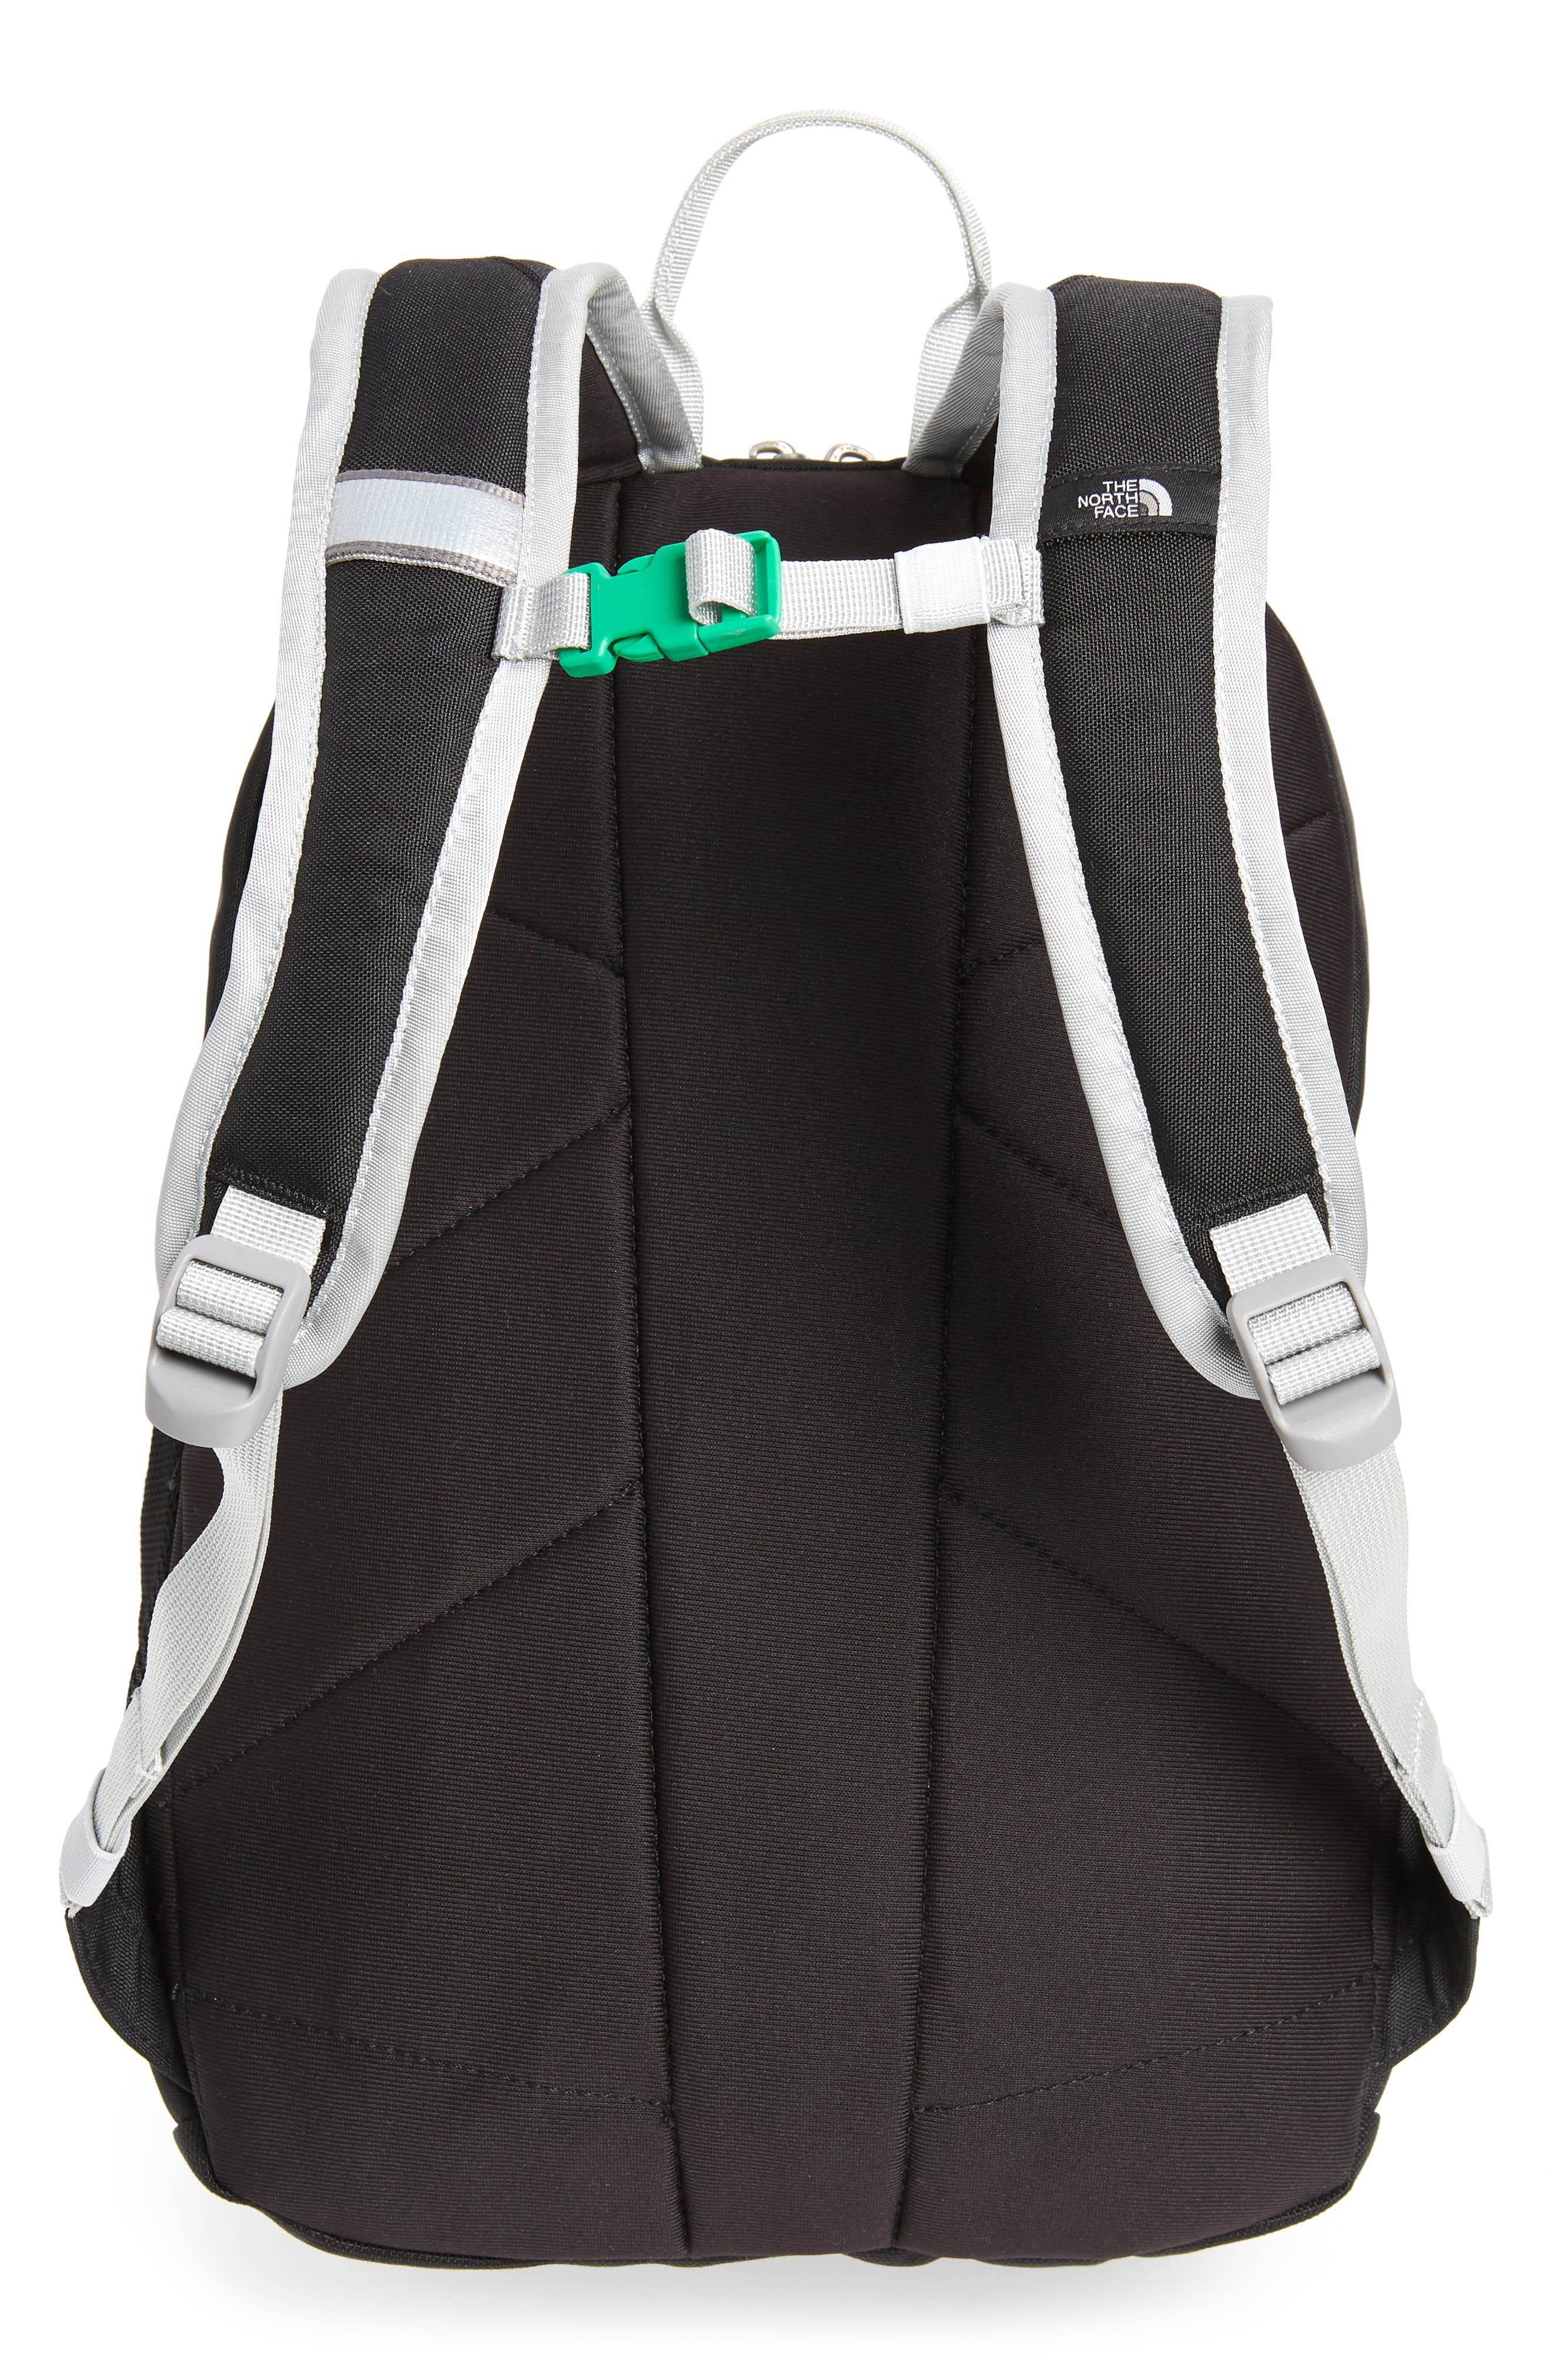 Recon Squash Backpack,                             Alternate thumbnail 2, color,                             Tnf Black/ High Rise Grey